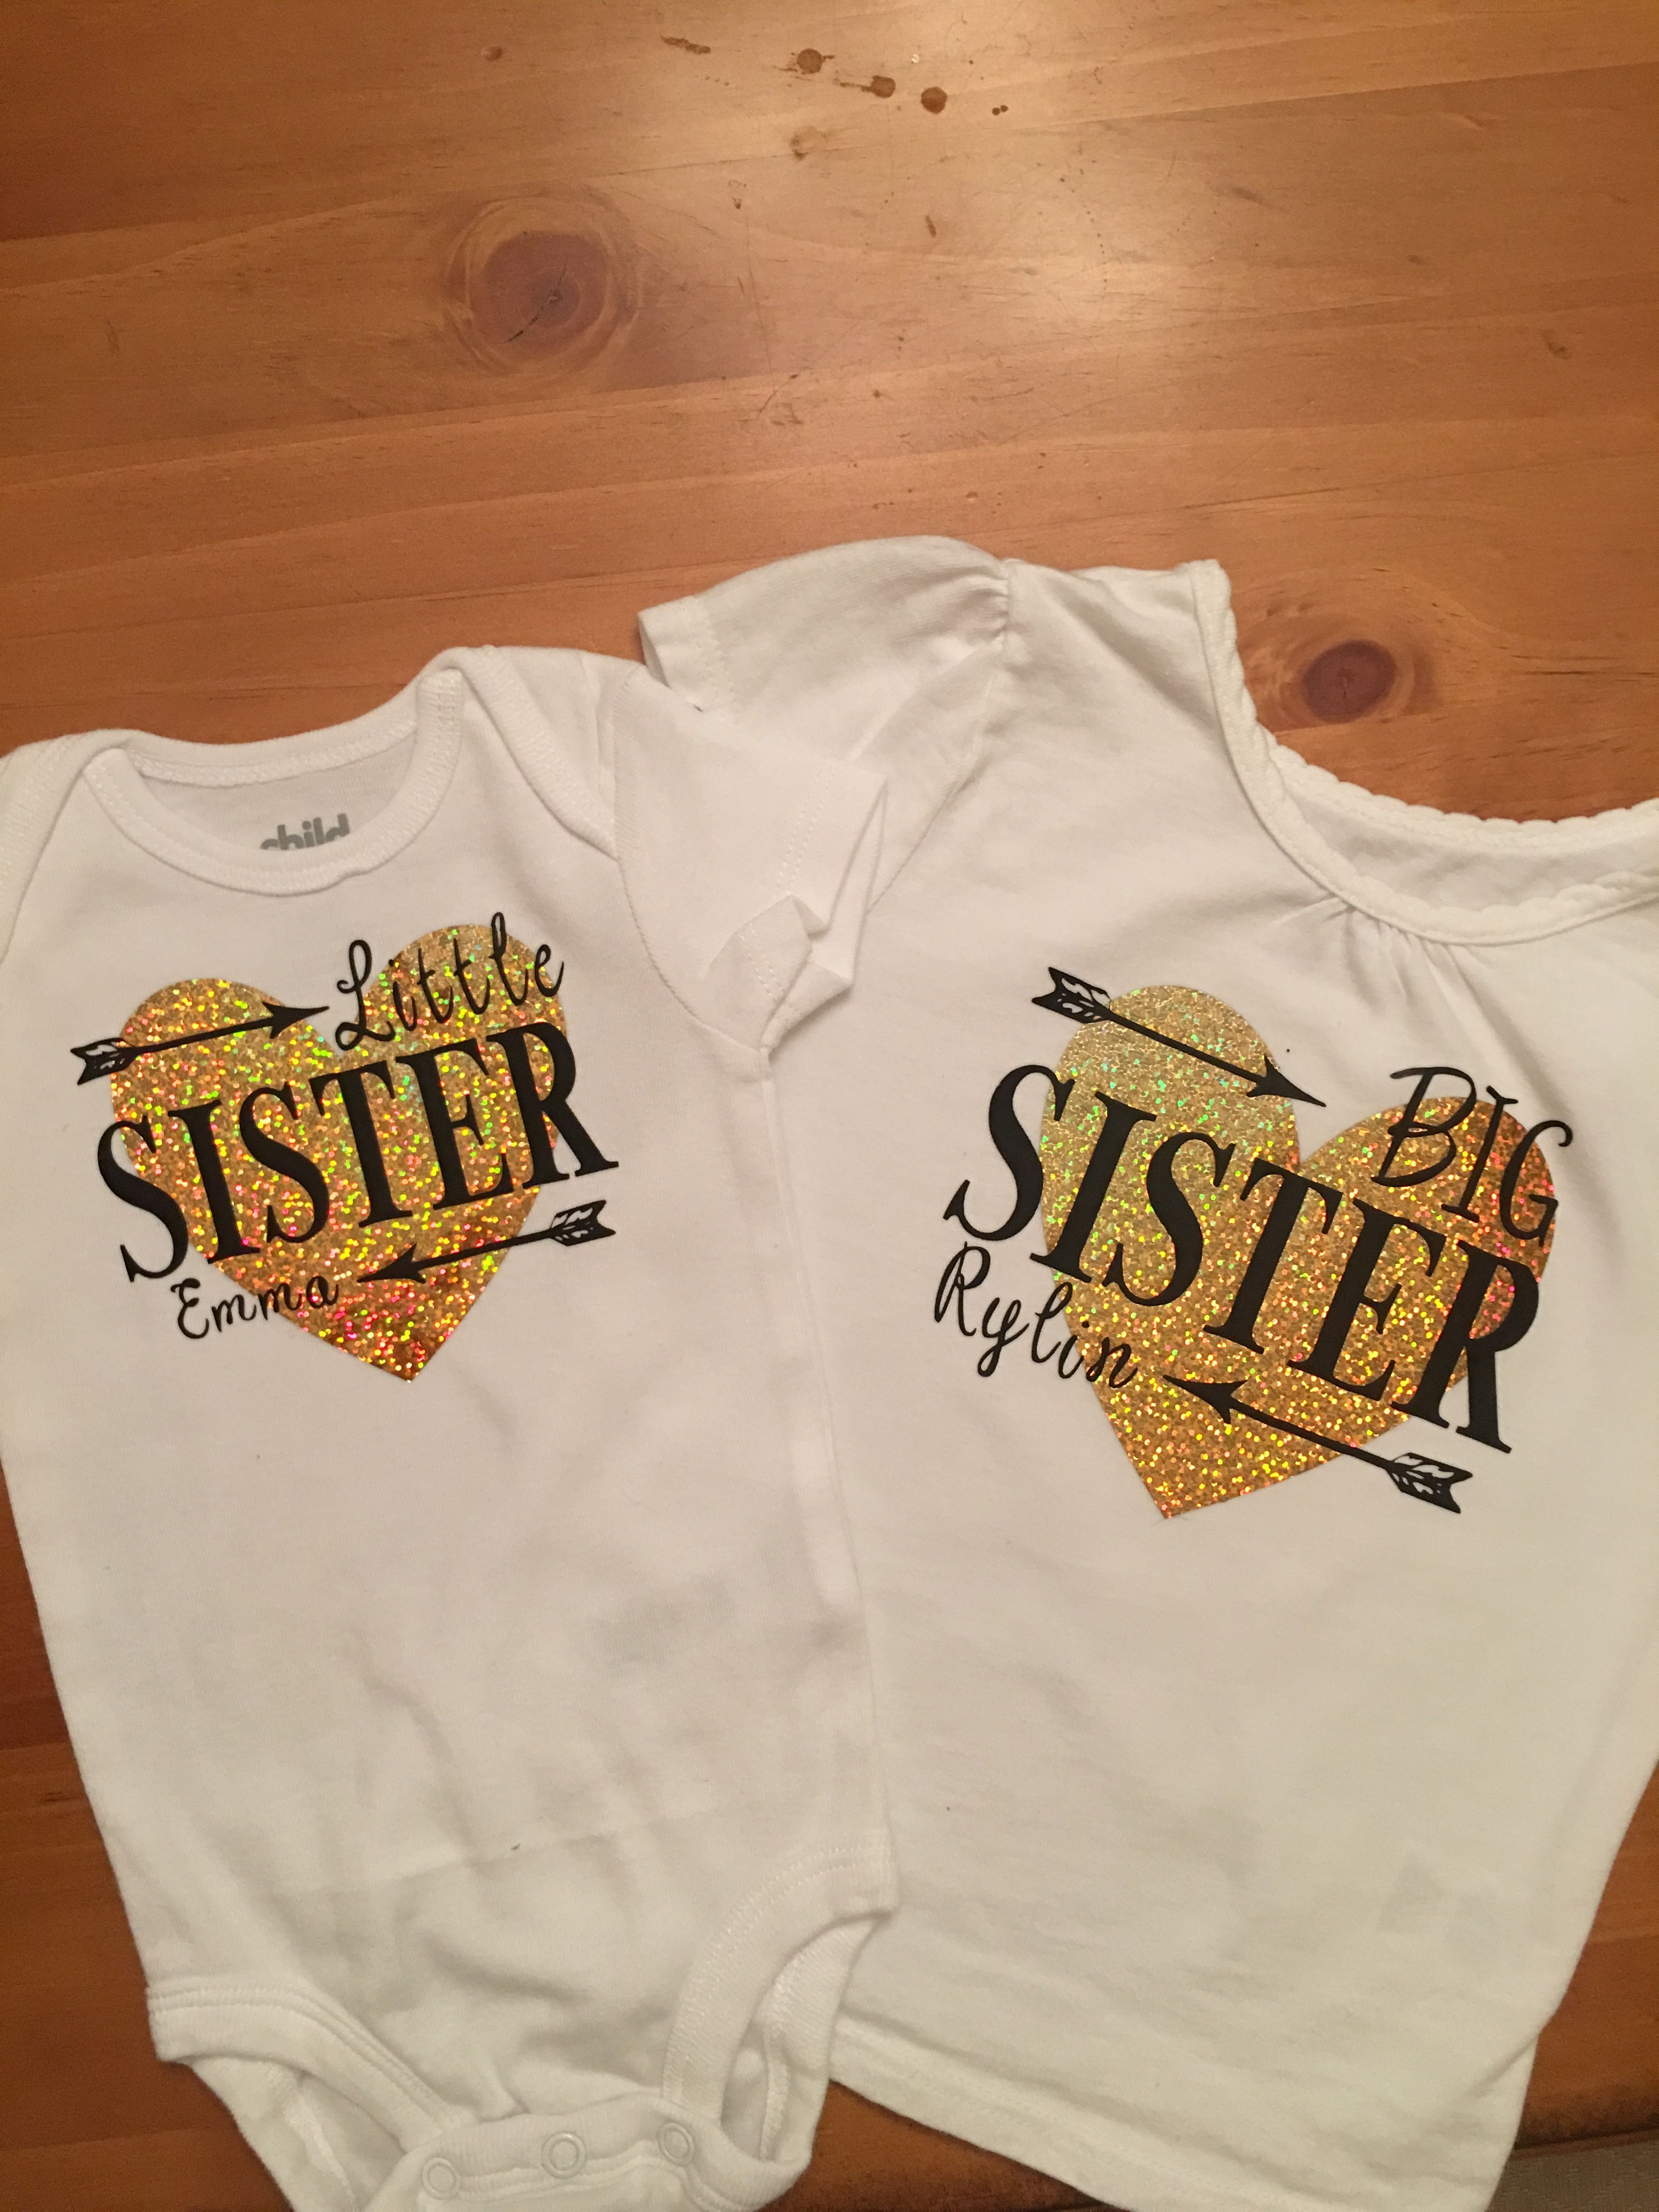 Big Sister Little Sister Shirts Probably The Best Project So Far So Fun To Come Up With A Design A Sister Shirts Matching Sister Shirts Big Sister Shirts Diy